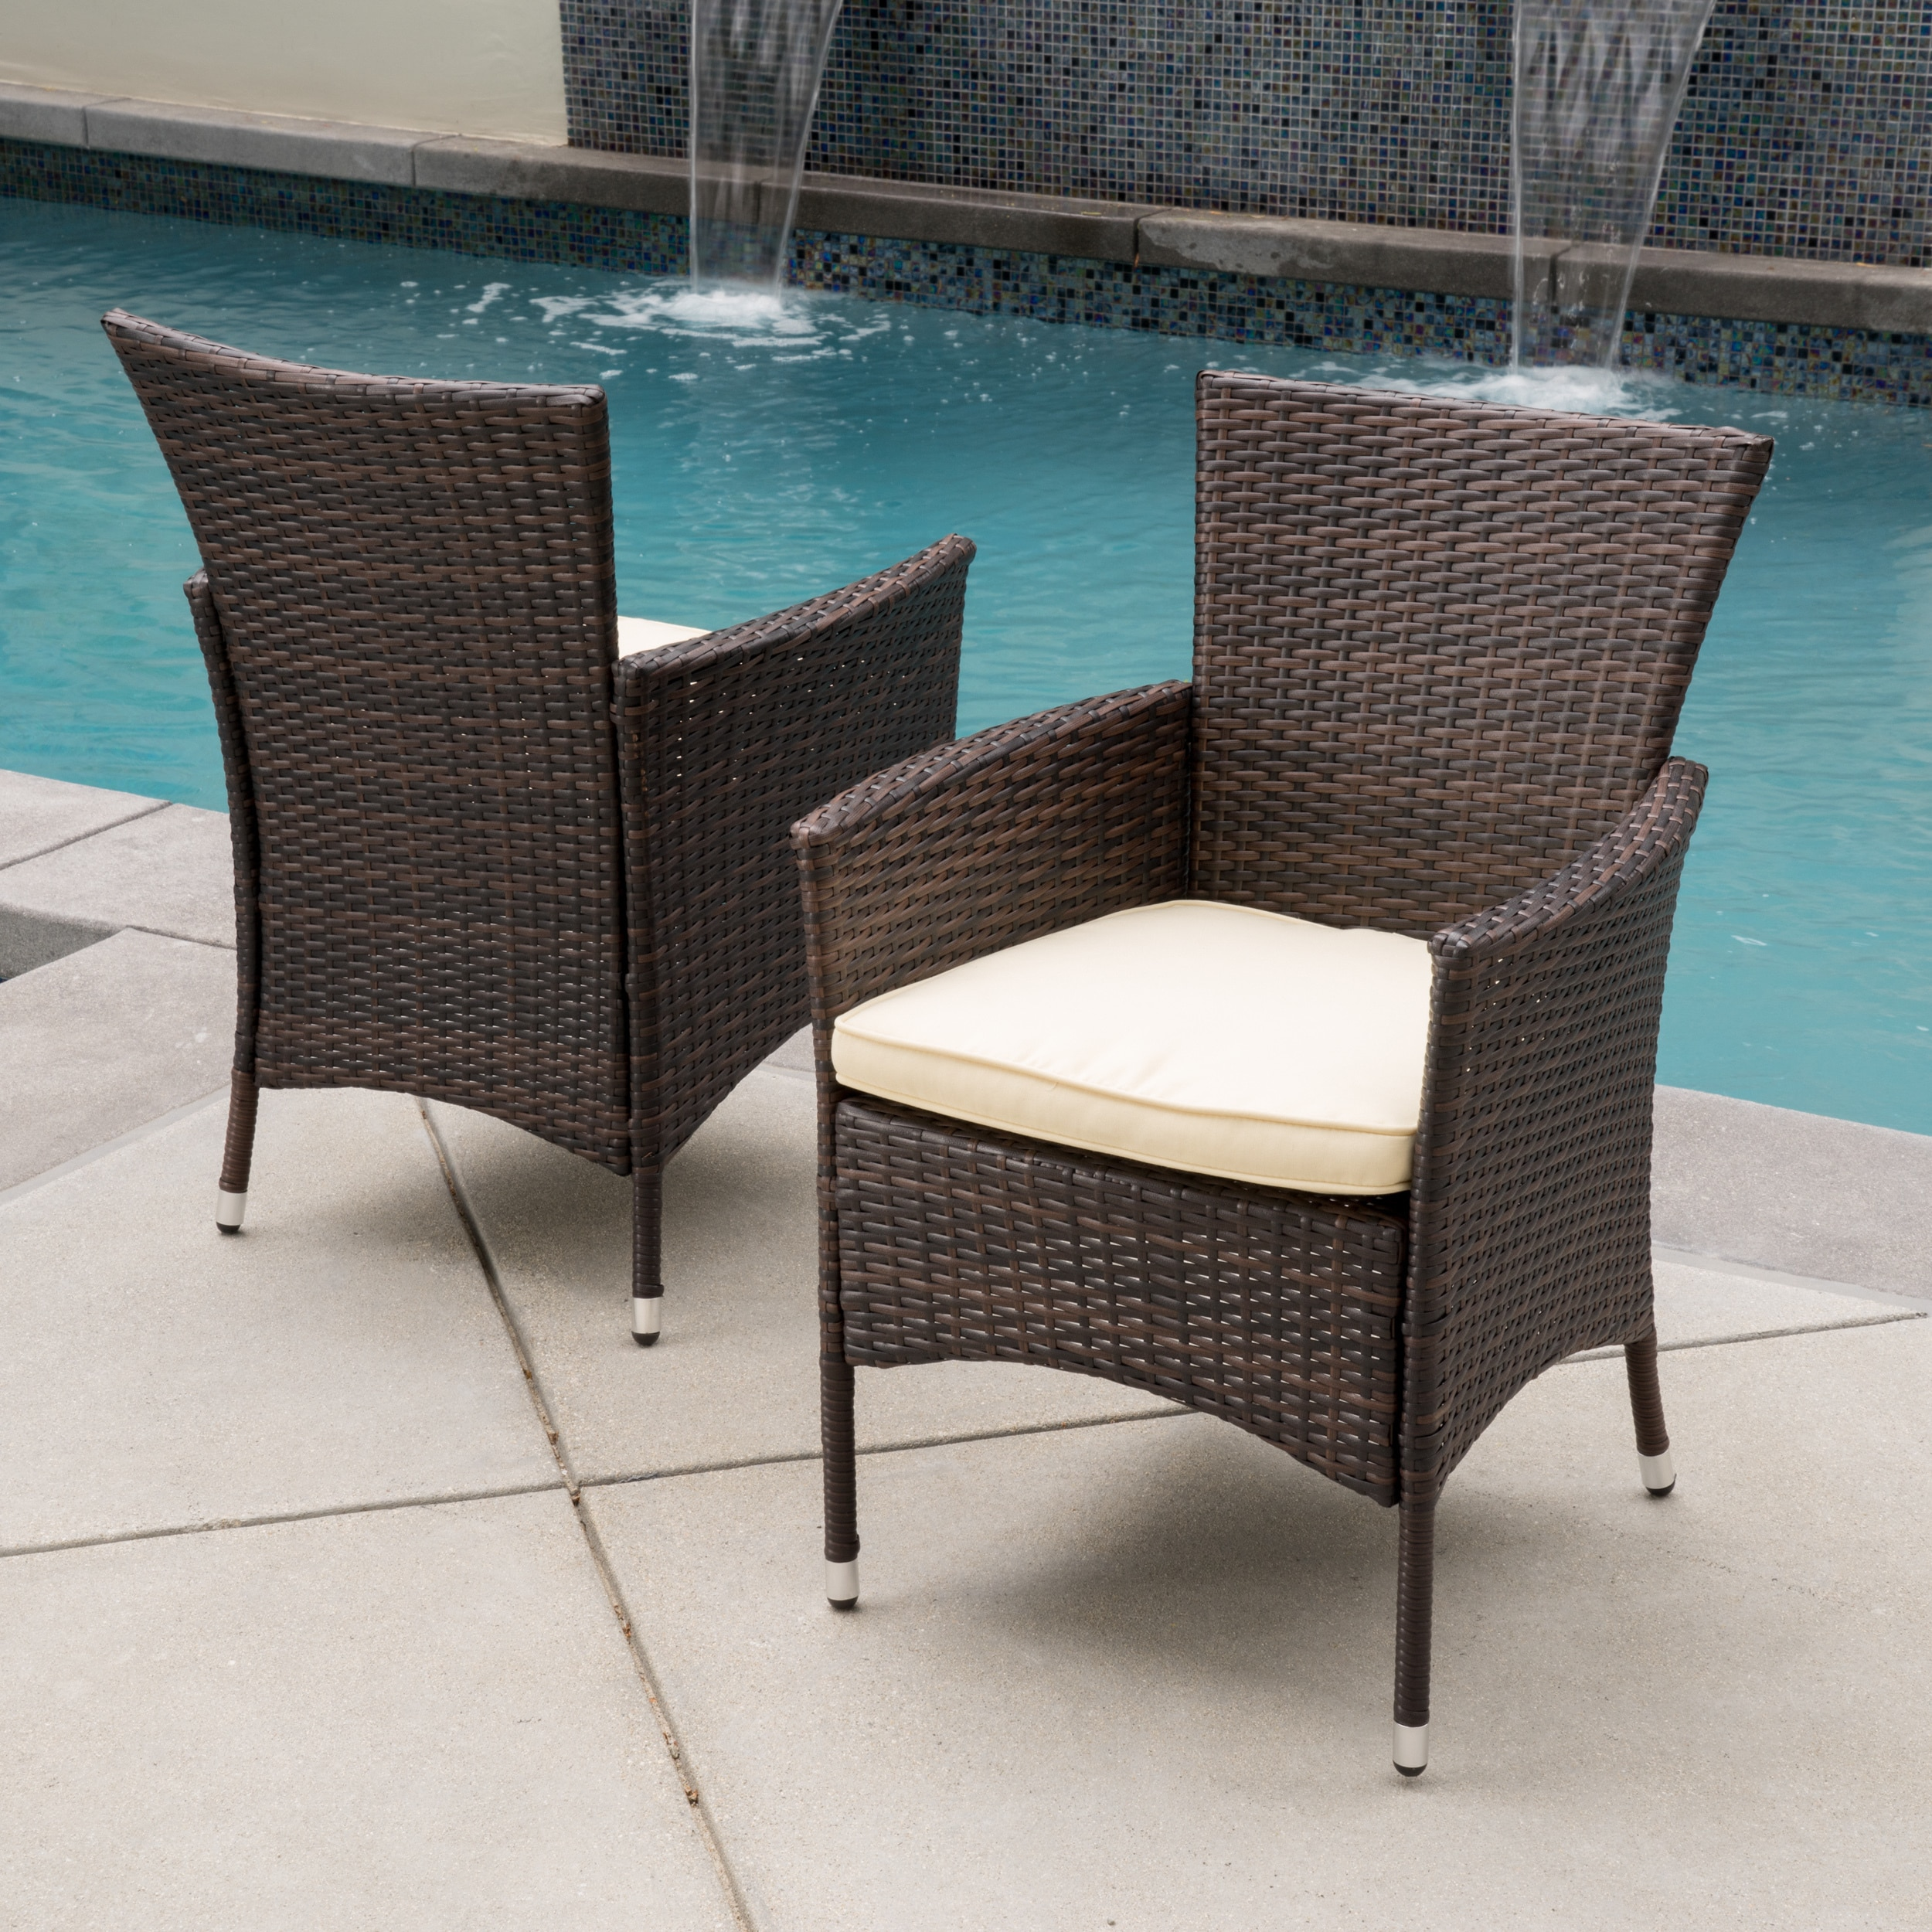 Wicker Patio Dining Chairs Online At Our Best Furniture Deals